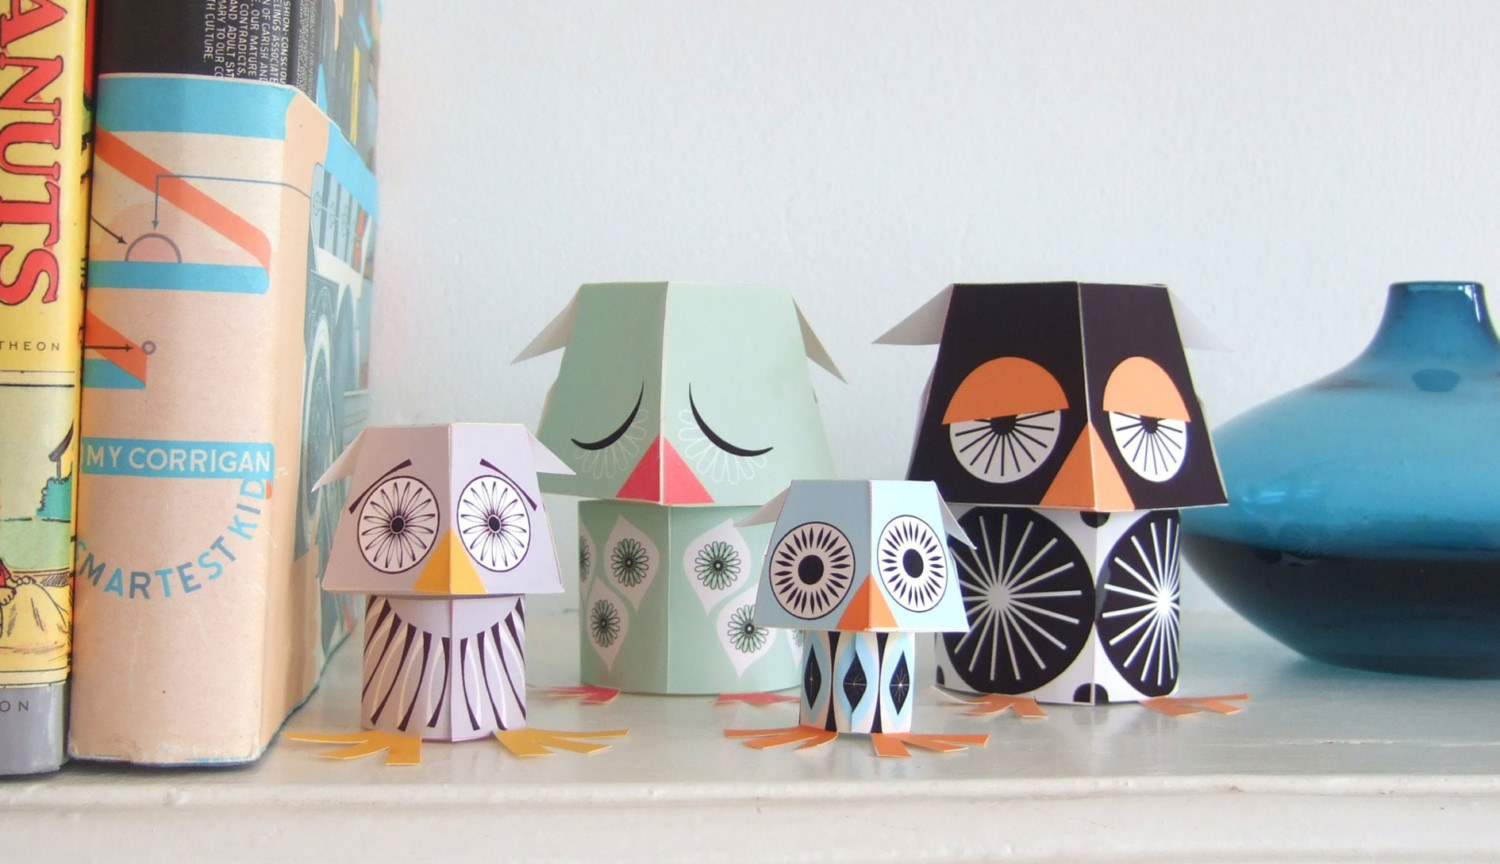 34 Of The Cutest DIY Projects You've Ever Seen